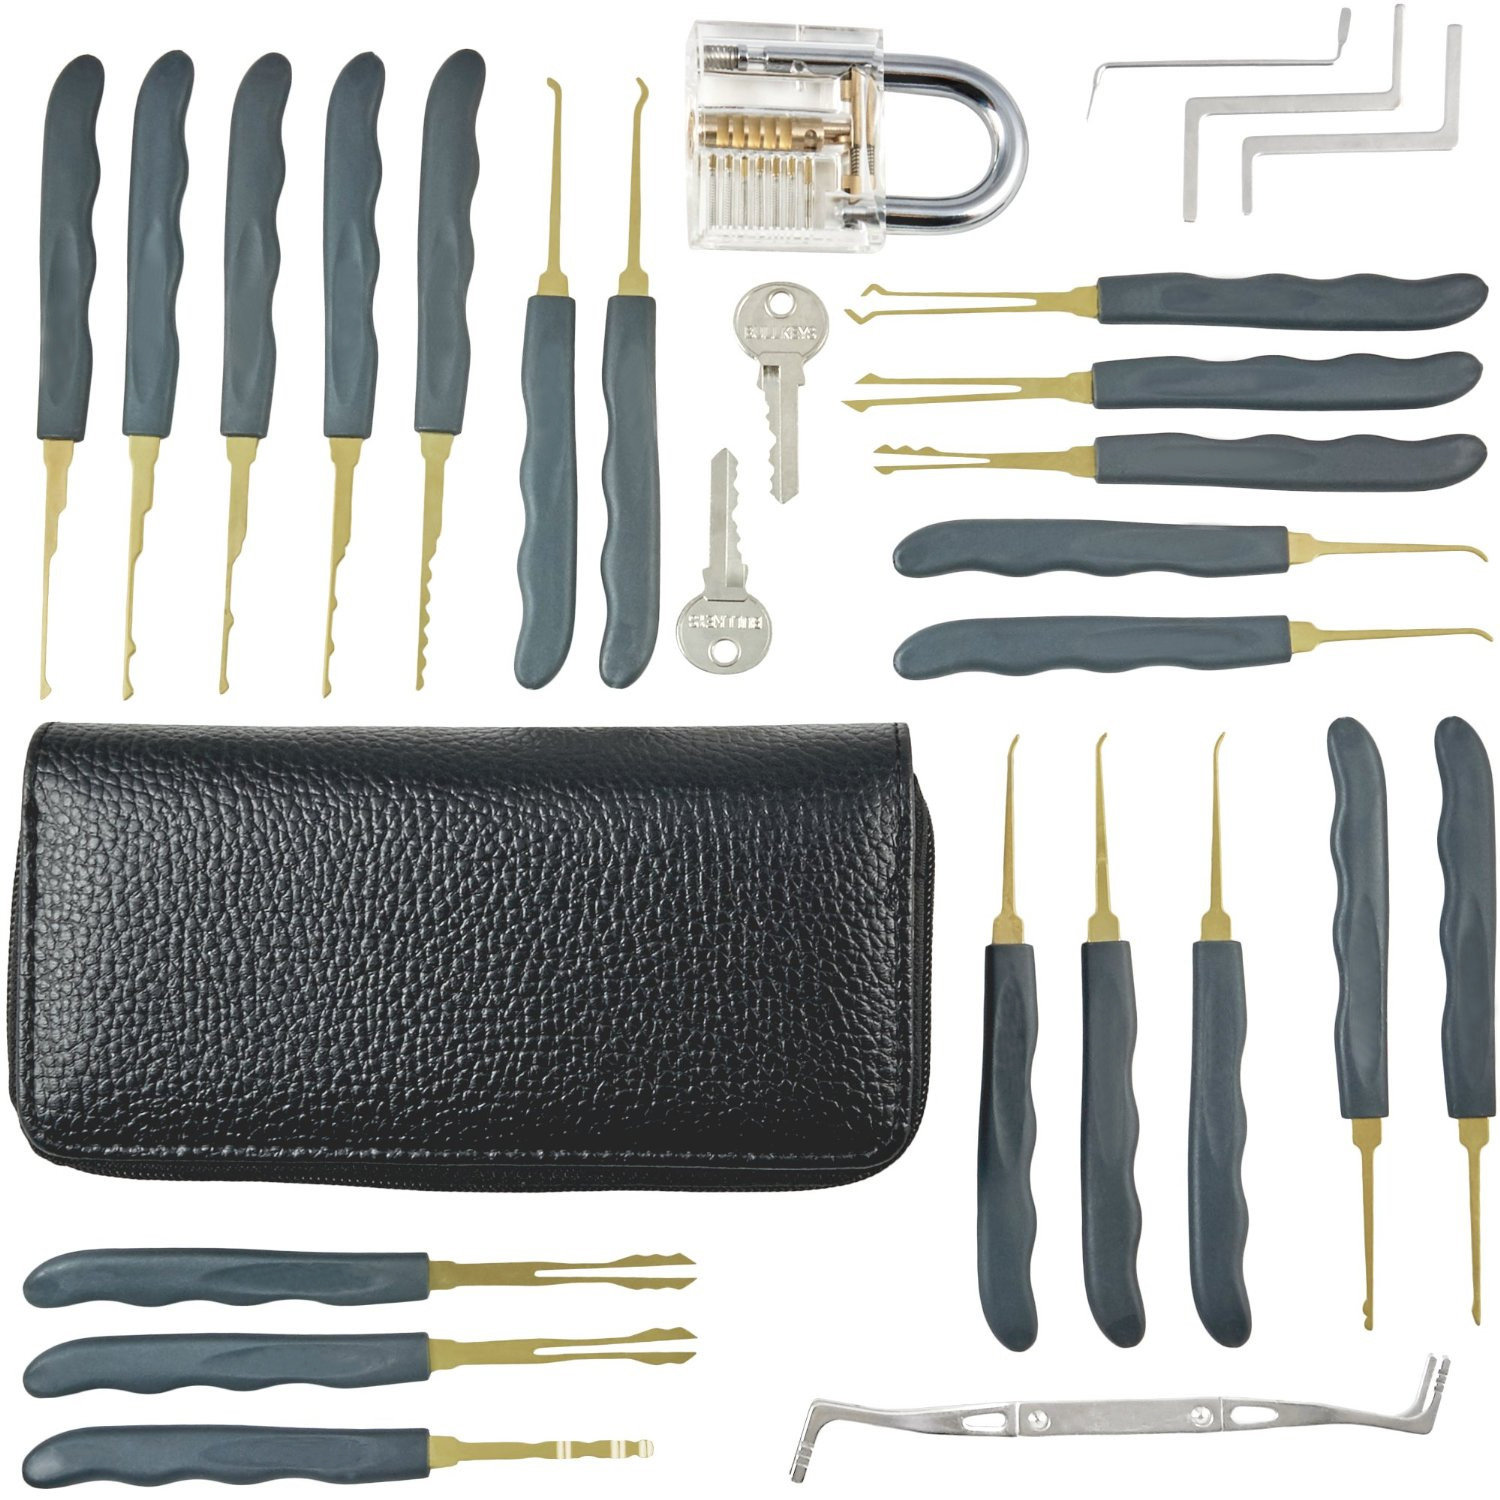 Goso 24-pieces Single Hook Lock Pick Set with a Transparent Practice Lock for Locksmiths